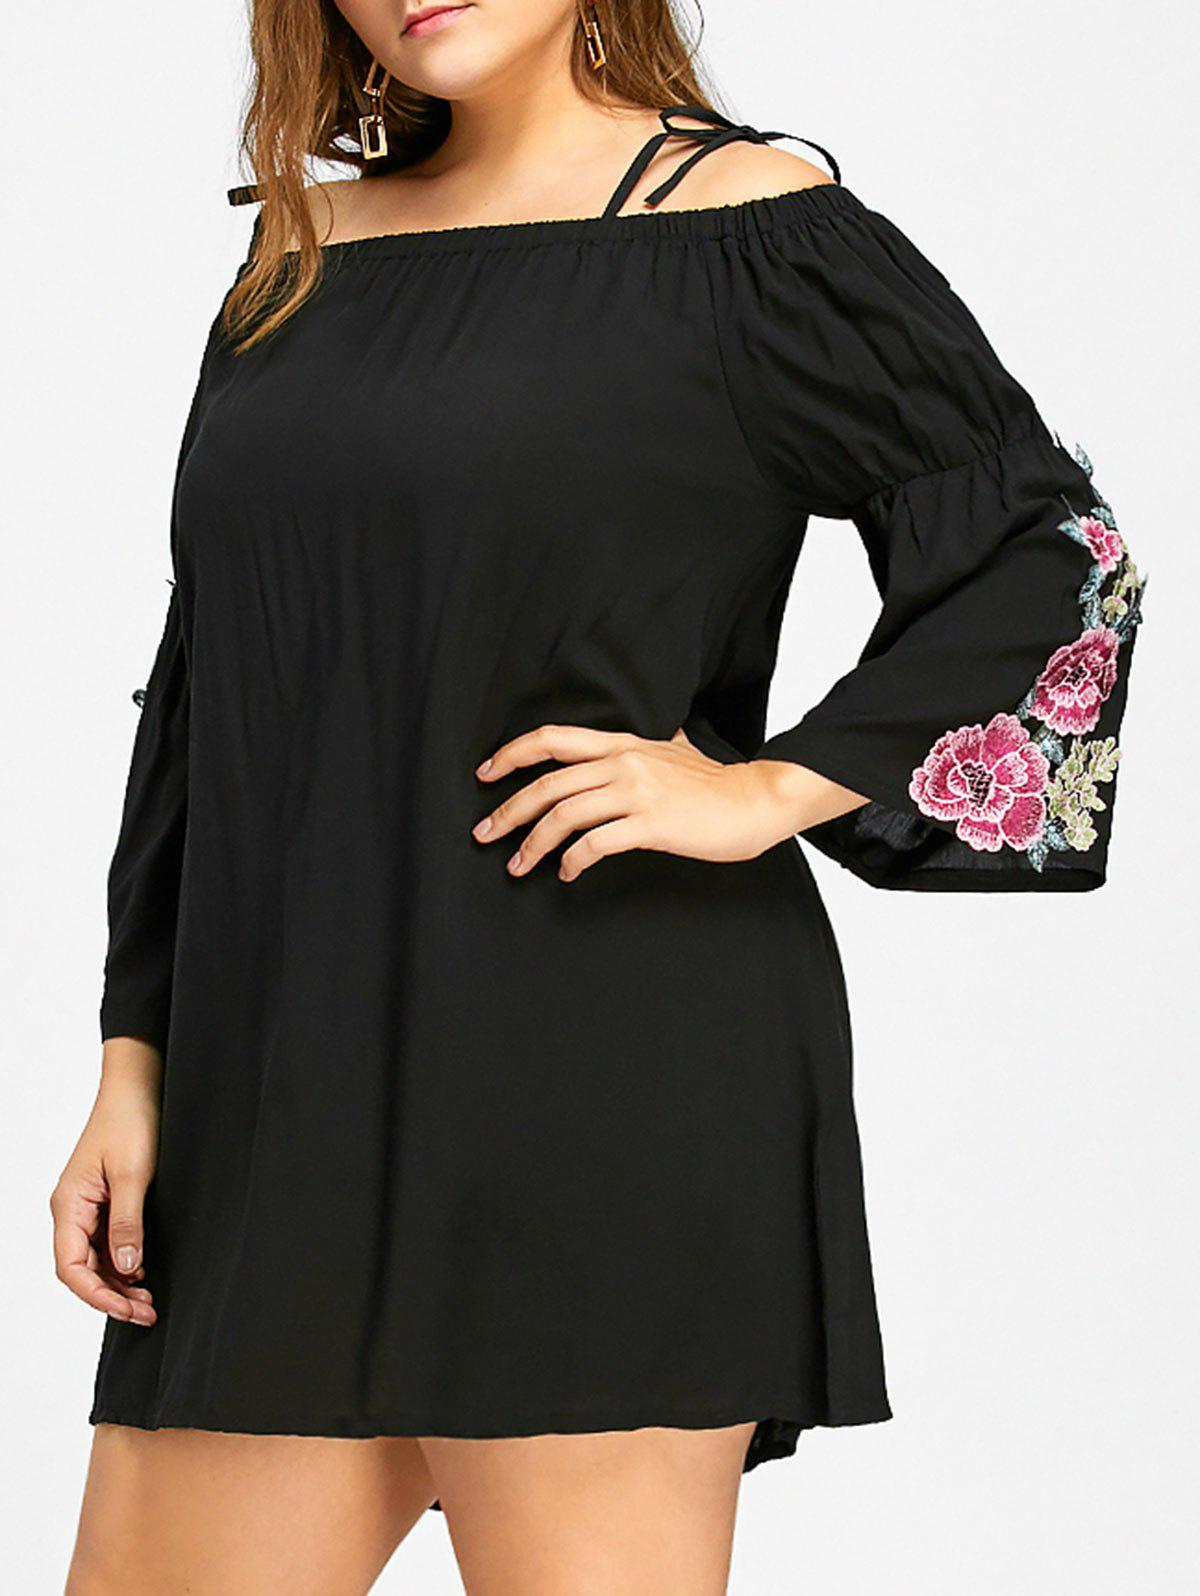 Floral Cold Shoulder Bell Sleeve Plus Size DressWOMEN<br><br>Size: XL; Color: BLACK; Style: Casual; Material: Cotton,Polyester; Silhouette: Sheath; Dresses Length: Mini; Neckline: Spaghetti Strap; Sleeve Type: Flare Sleeve; Sleeve Length: Long Sleeves; Embellishment: Appliques; Pattern Type: Floral; With Belt: No; Season: Fall,Spring,Summer; Weight: 0.2800kg; Package Contents: 1 x Dress;